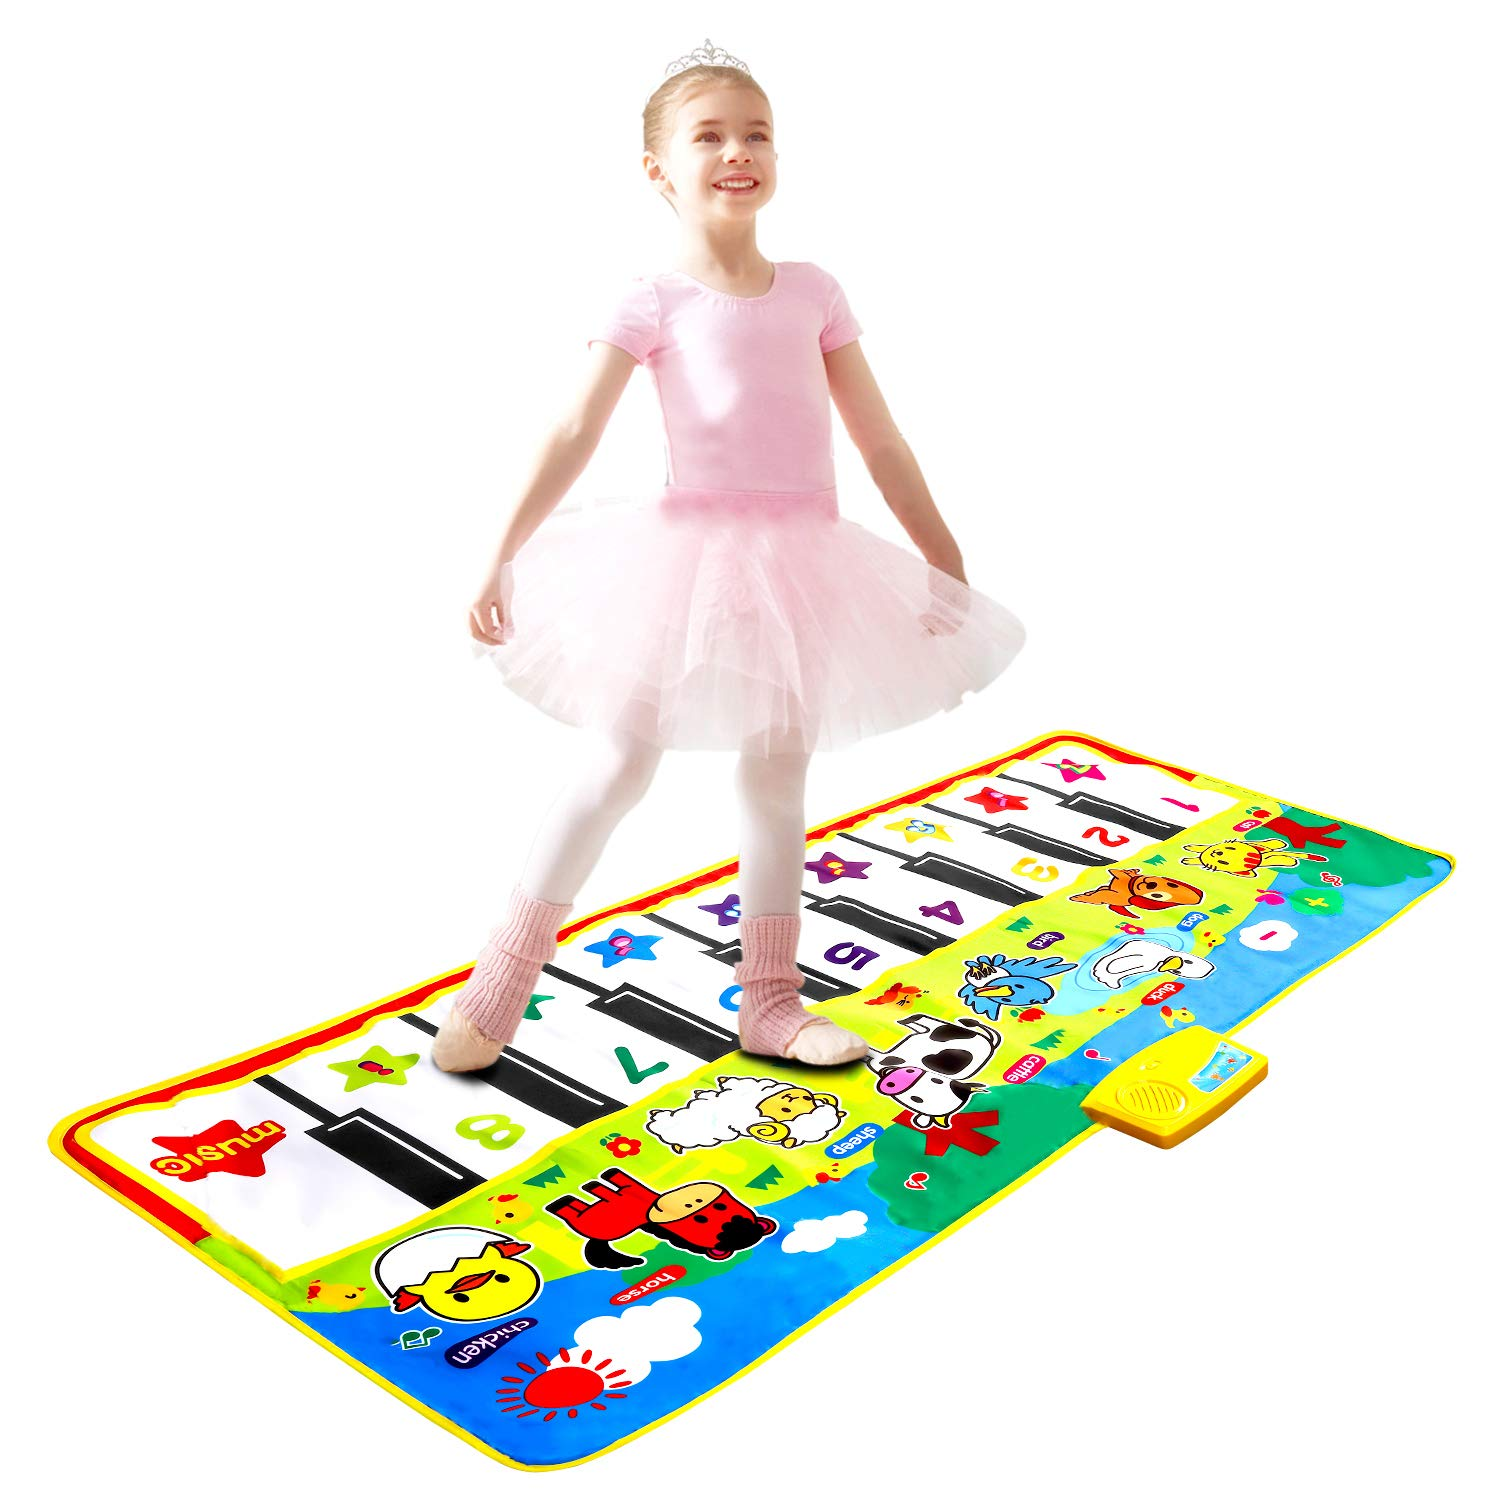 M SANMERSEN Piano Music Mat, Music Dance Mat, Keyboard Play Mat, Animal Blanket Carpet Playmat, Musical Touch Play Game Gifts for Kids Toddlers Girls Boys, 53'' x 23'' by M SANMERSEN